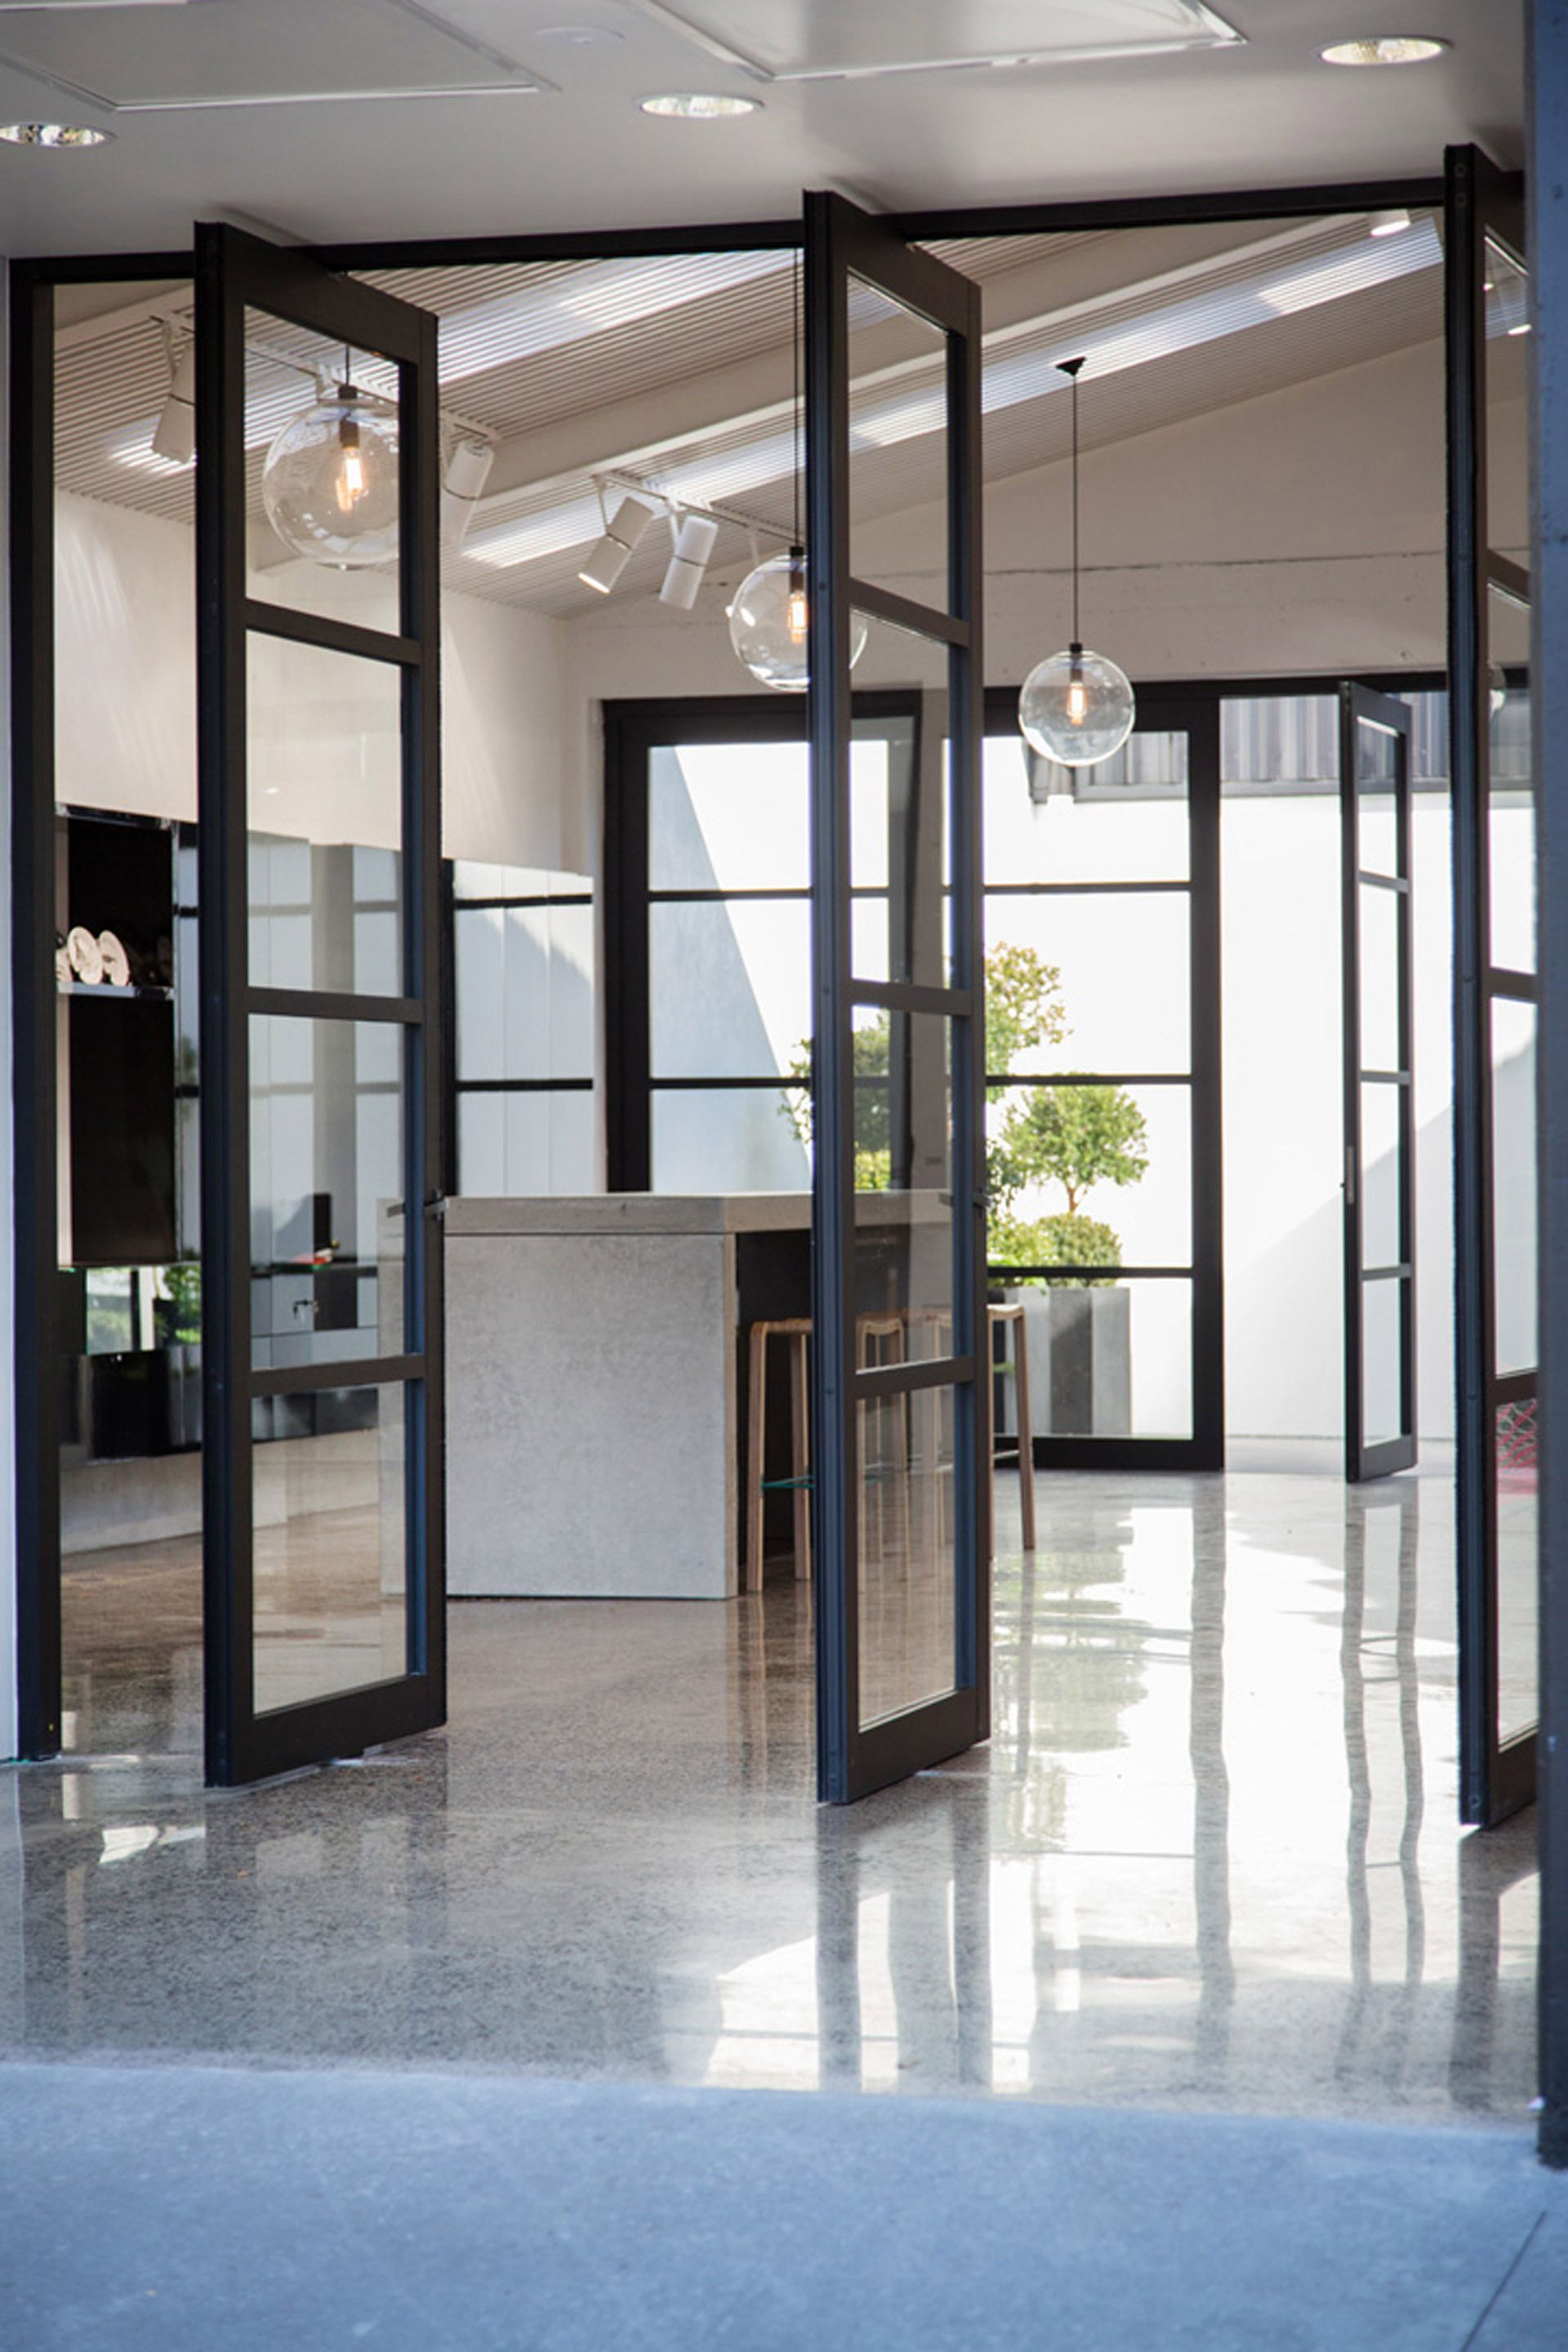 Home Office Sliding Glass Room Dividers Inspirational Gallery: Gallery Of Mildred & Co / Jose Gutierrez - 11